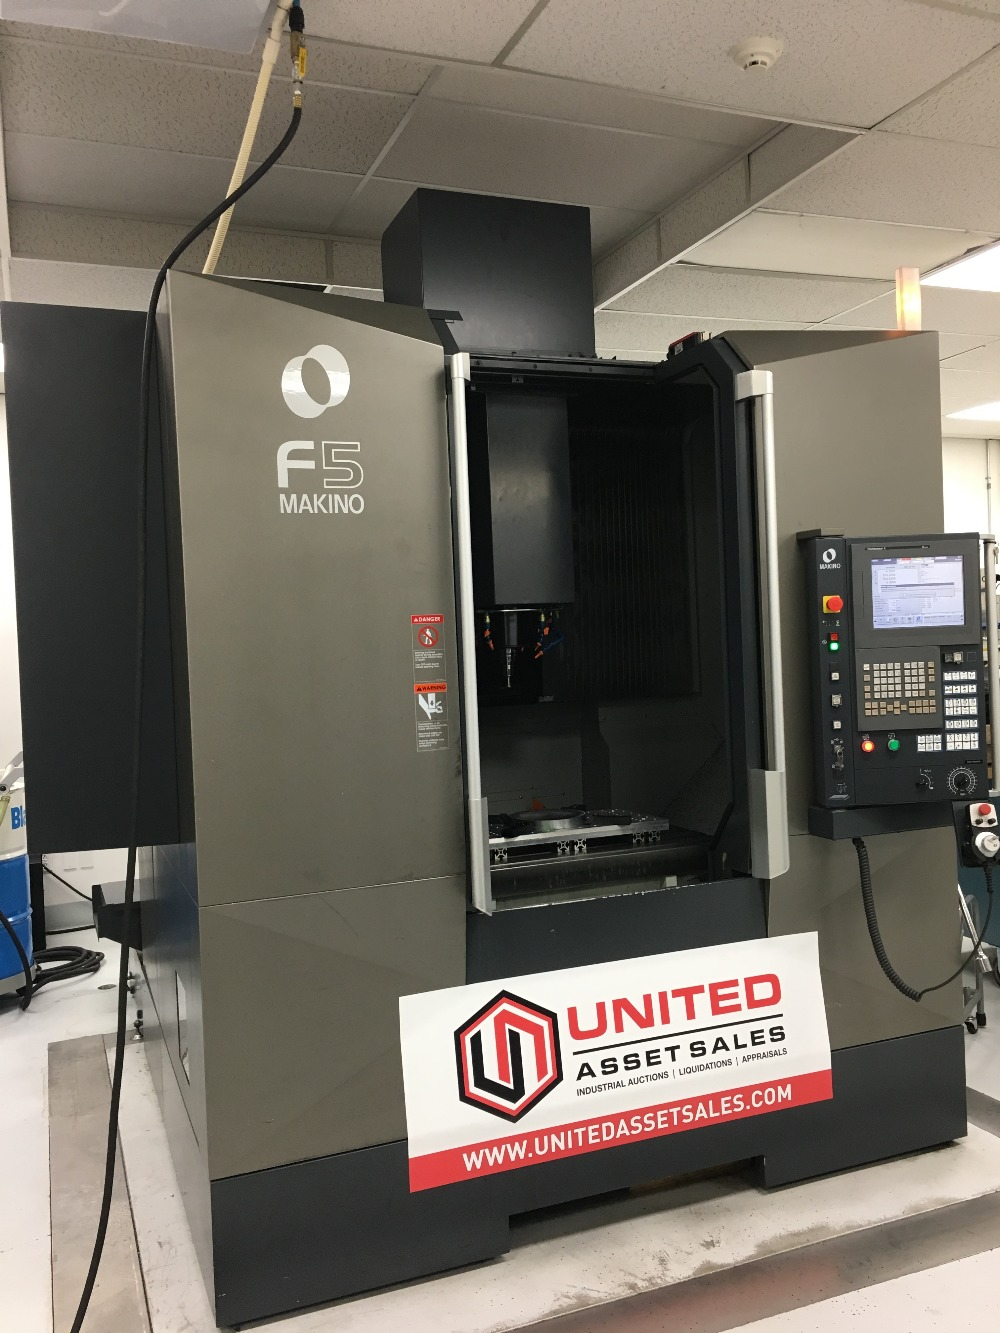 Lot 5 - 2013 MAKINO F5 VERTICAL MACHINING CENTER, 20,000 RPM SPINDLE